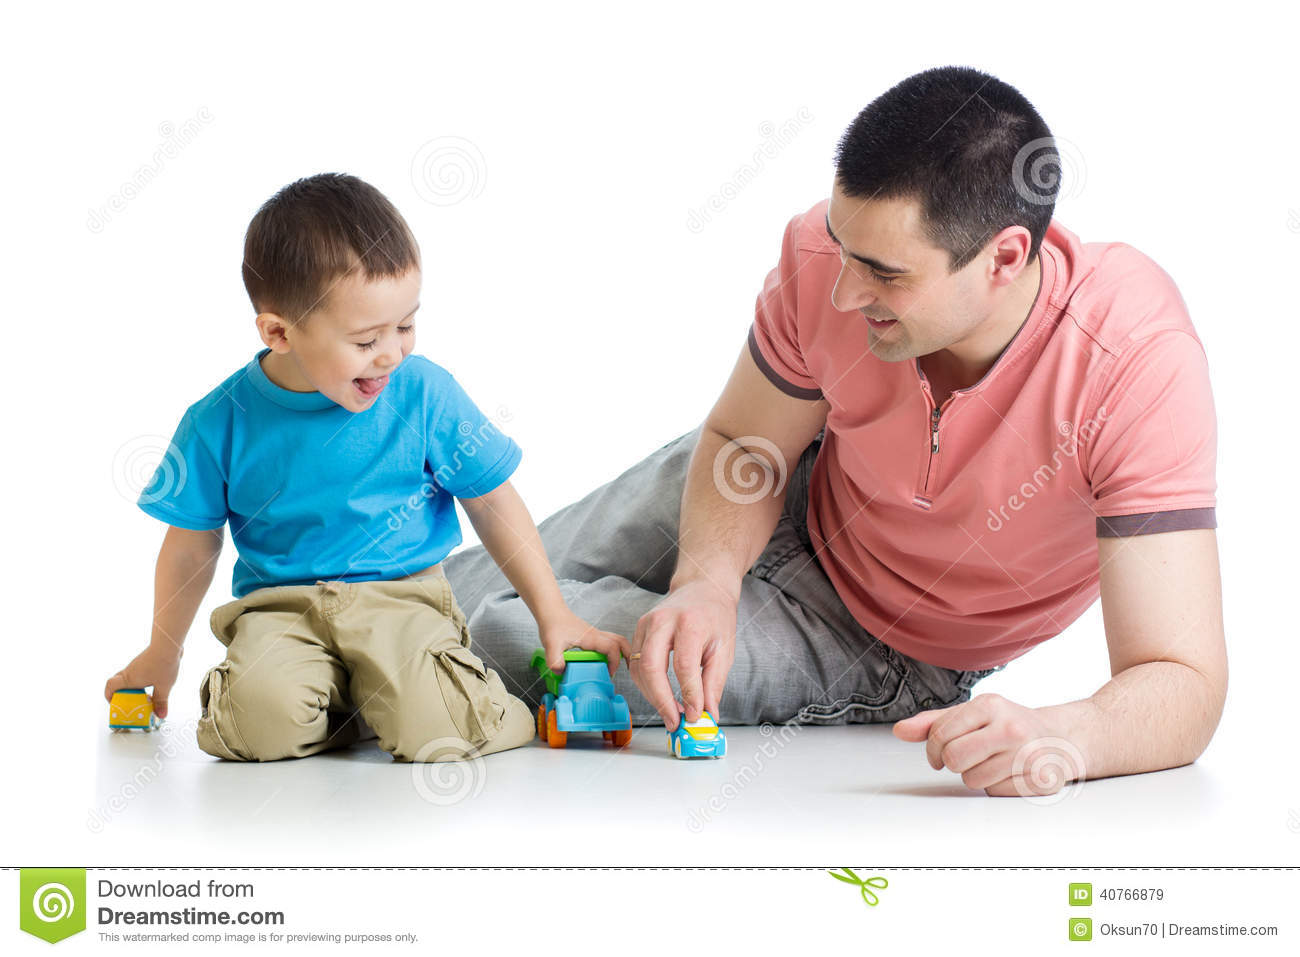 Boy Toys For Dads : Kid boy and father play with car toys stock image